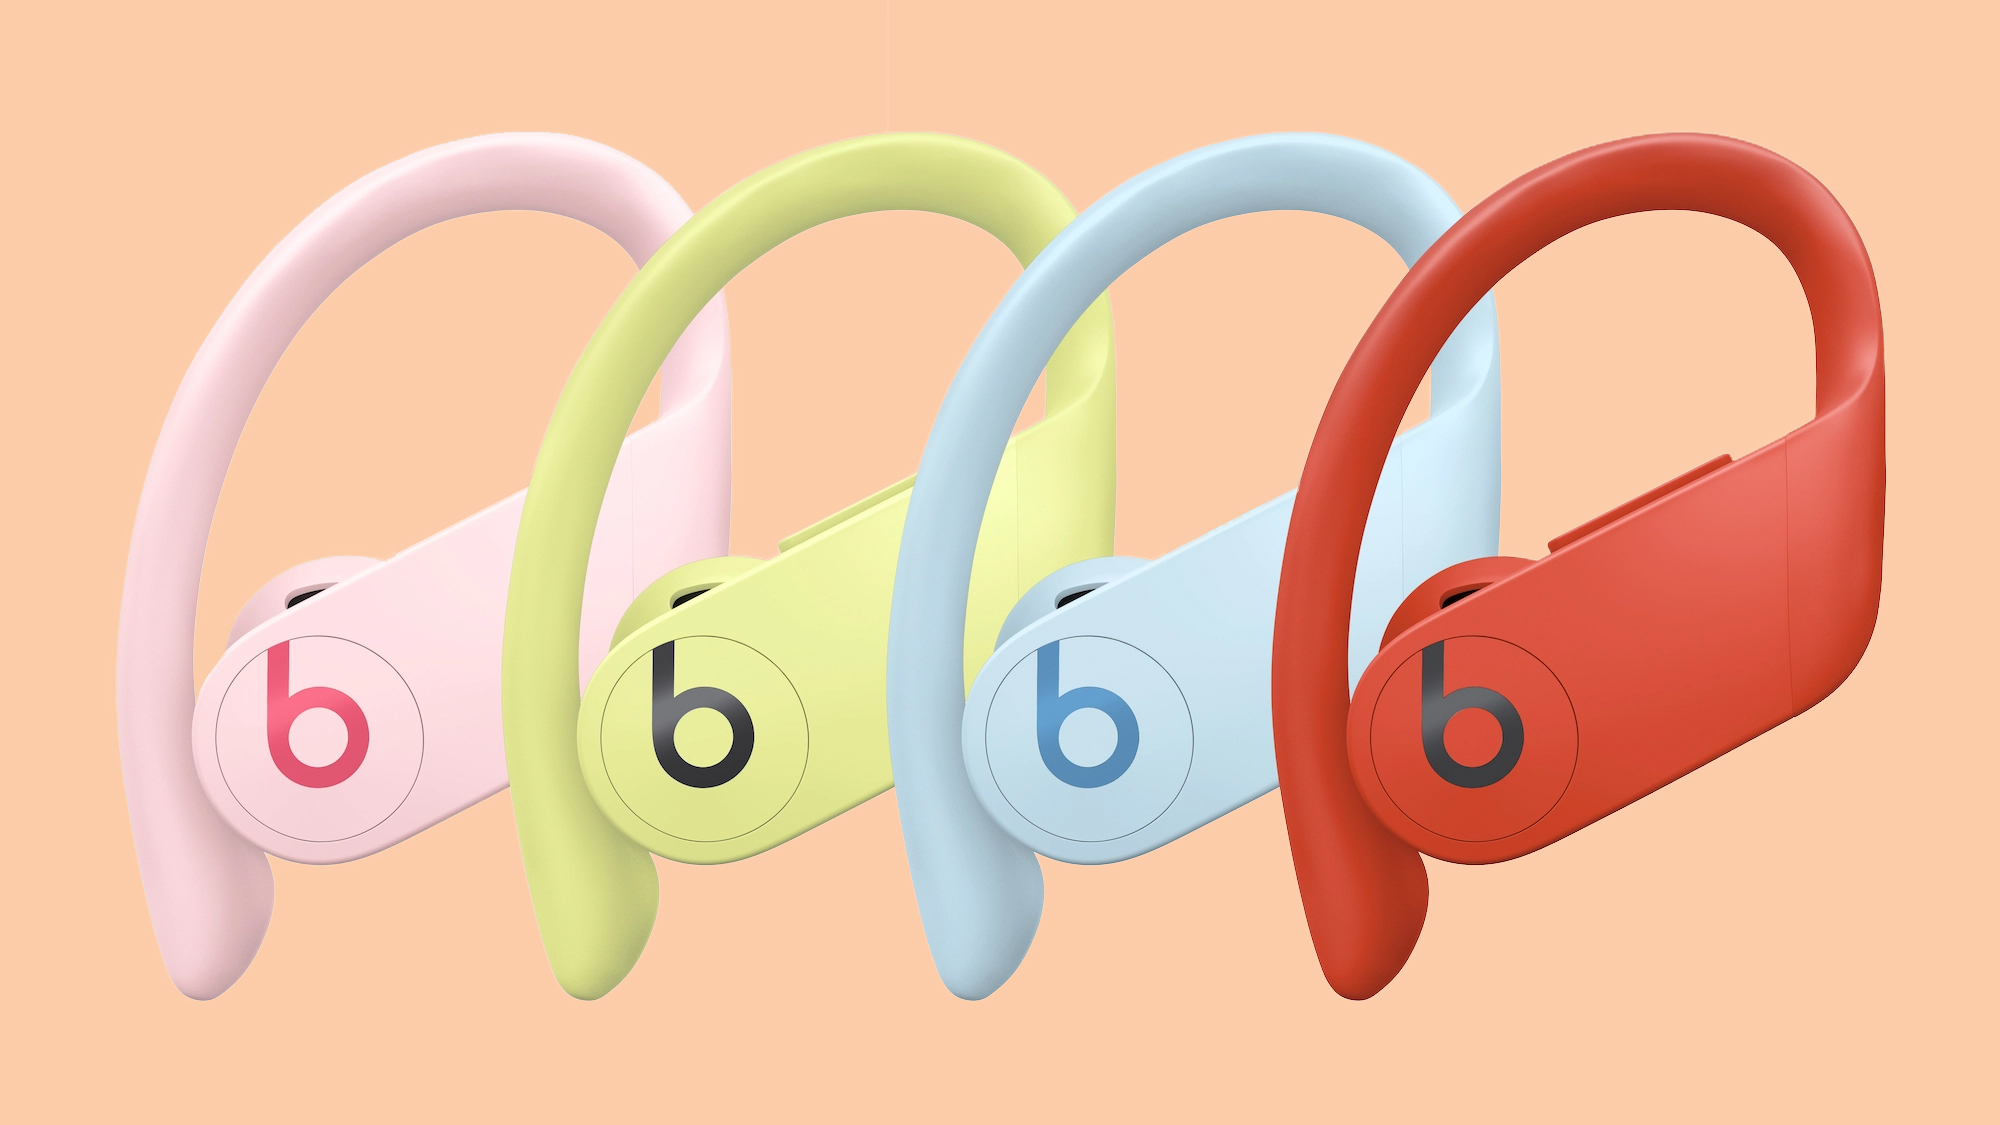 Powerbeats Pro Debut in Four New Colors: Spring Yellow, Cloud Pink, Lava Red, and Glacier Blue